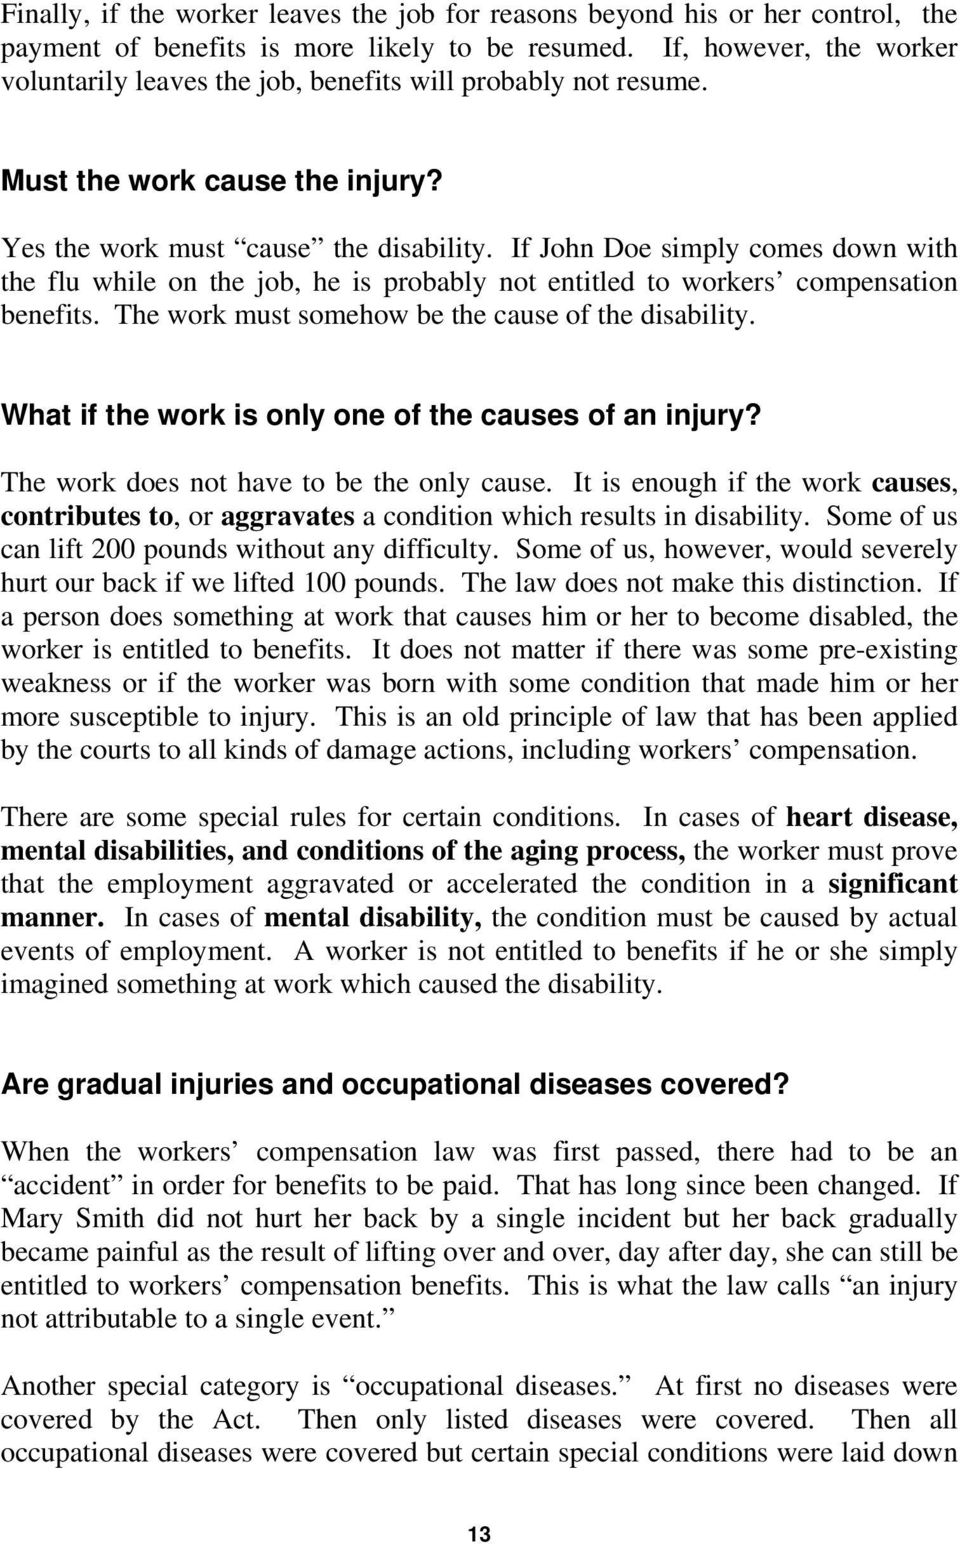 If John Doe simply comes down with the flu while on the job, he is probably not entitled to workers compensation benefits. The work must somehow be the cause of the disability.